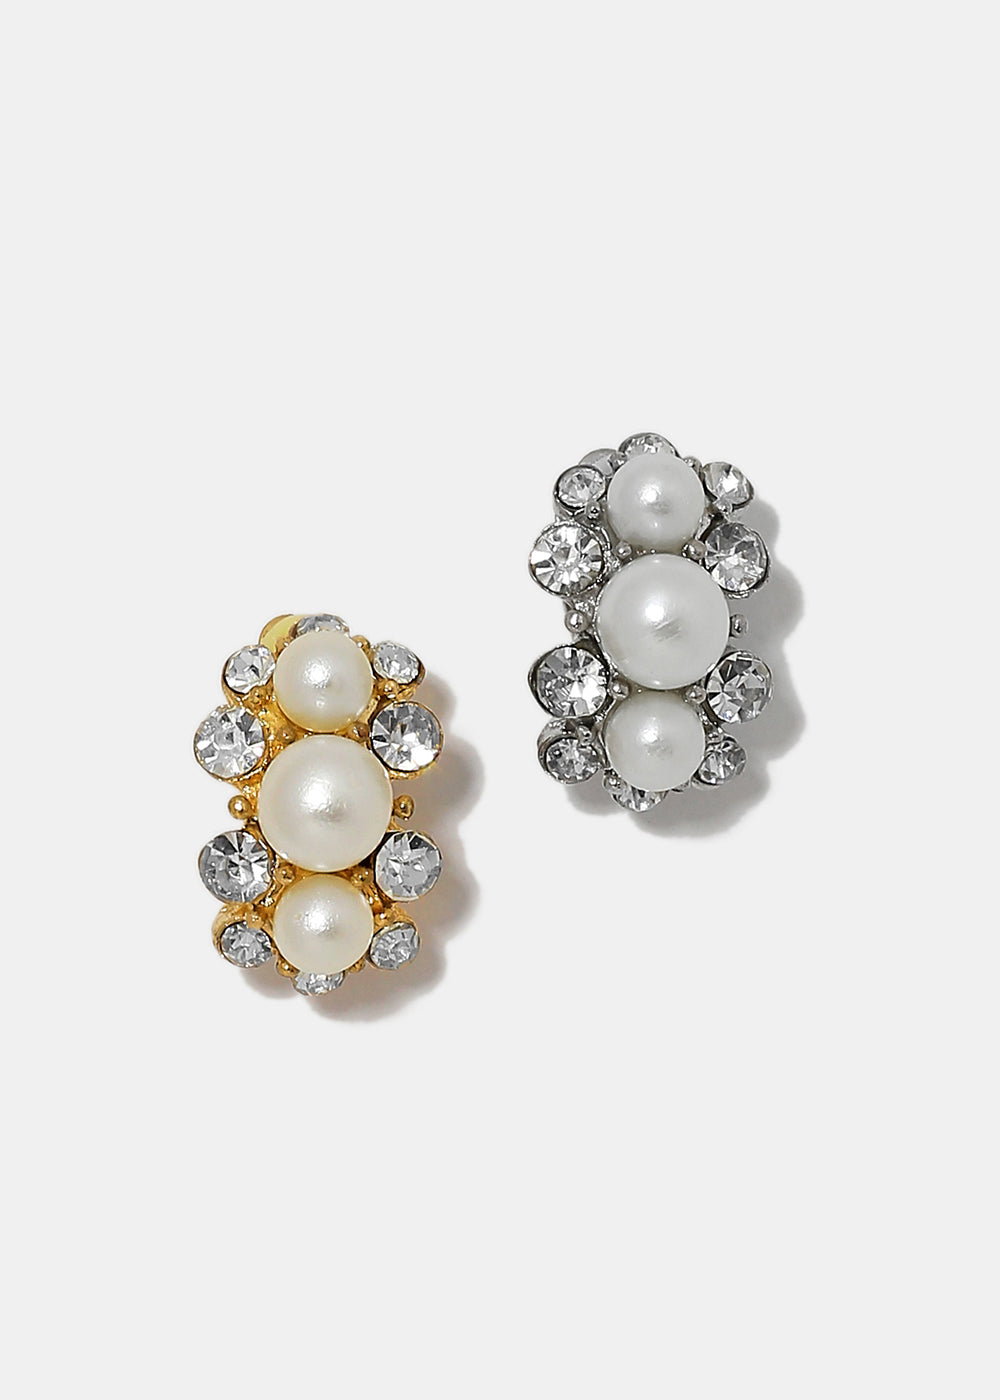 Elegant Pearl and Rhinestone Clip On Earrings